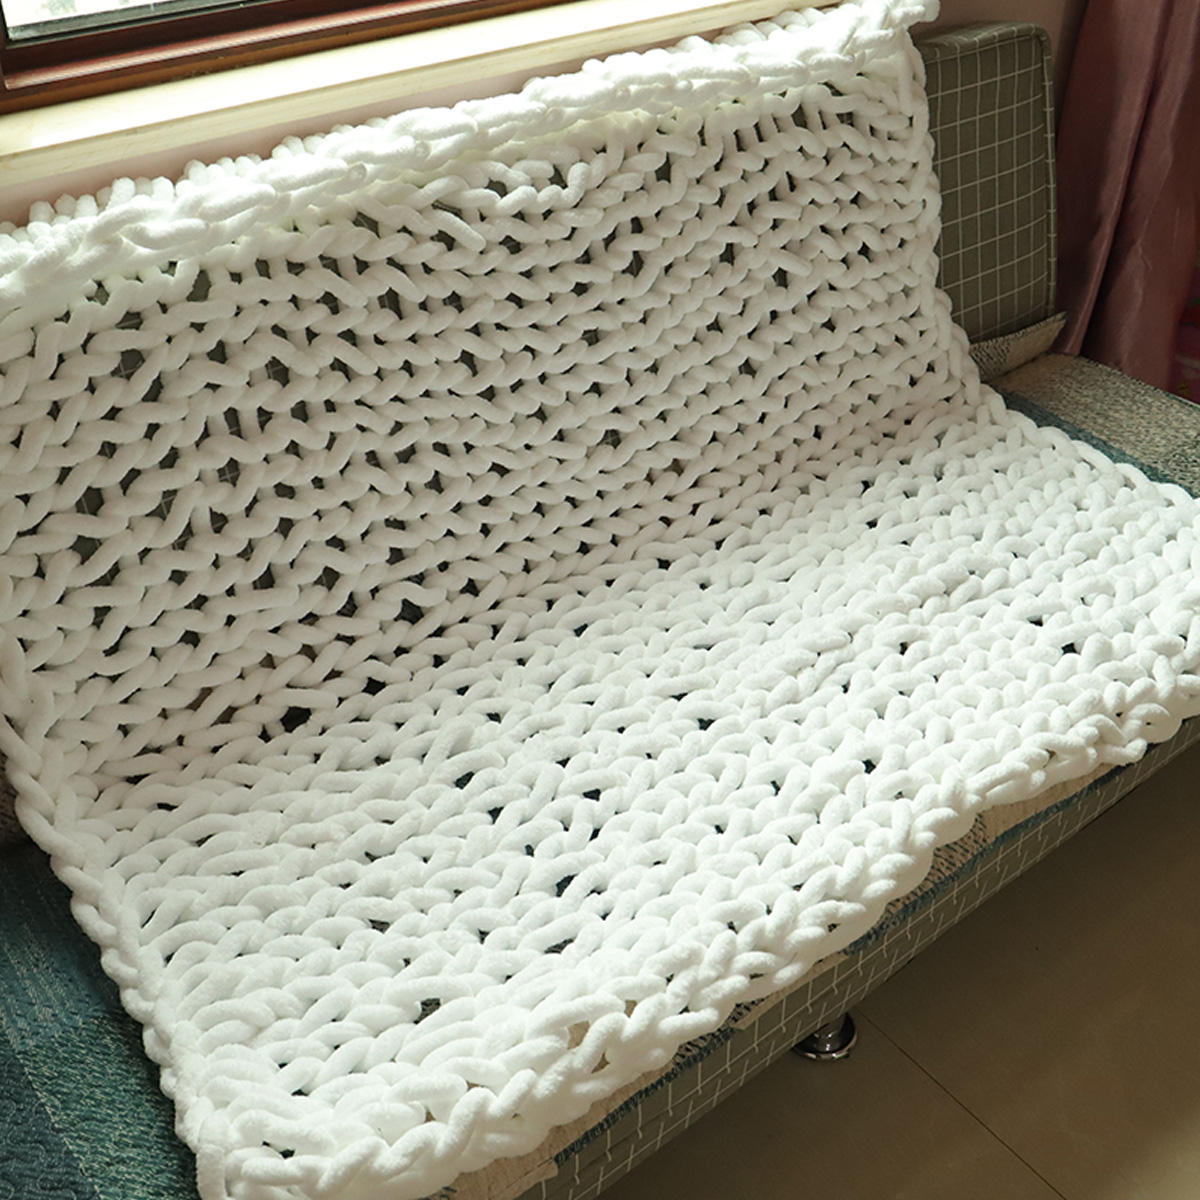 100x150cm Handmade Knitted Blanket Cotton Soft Washable Lint free Throw Blankets - 5